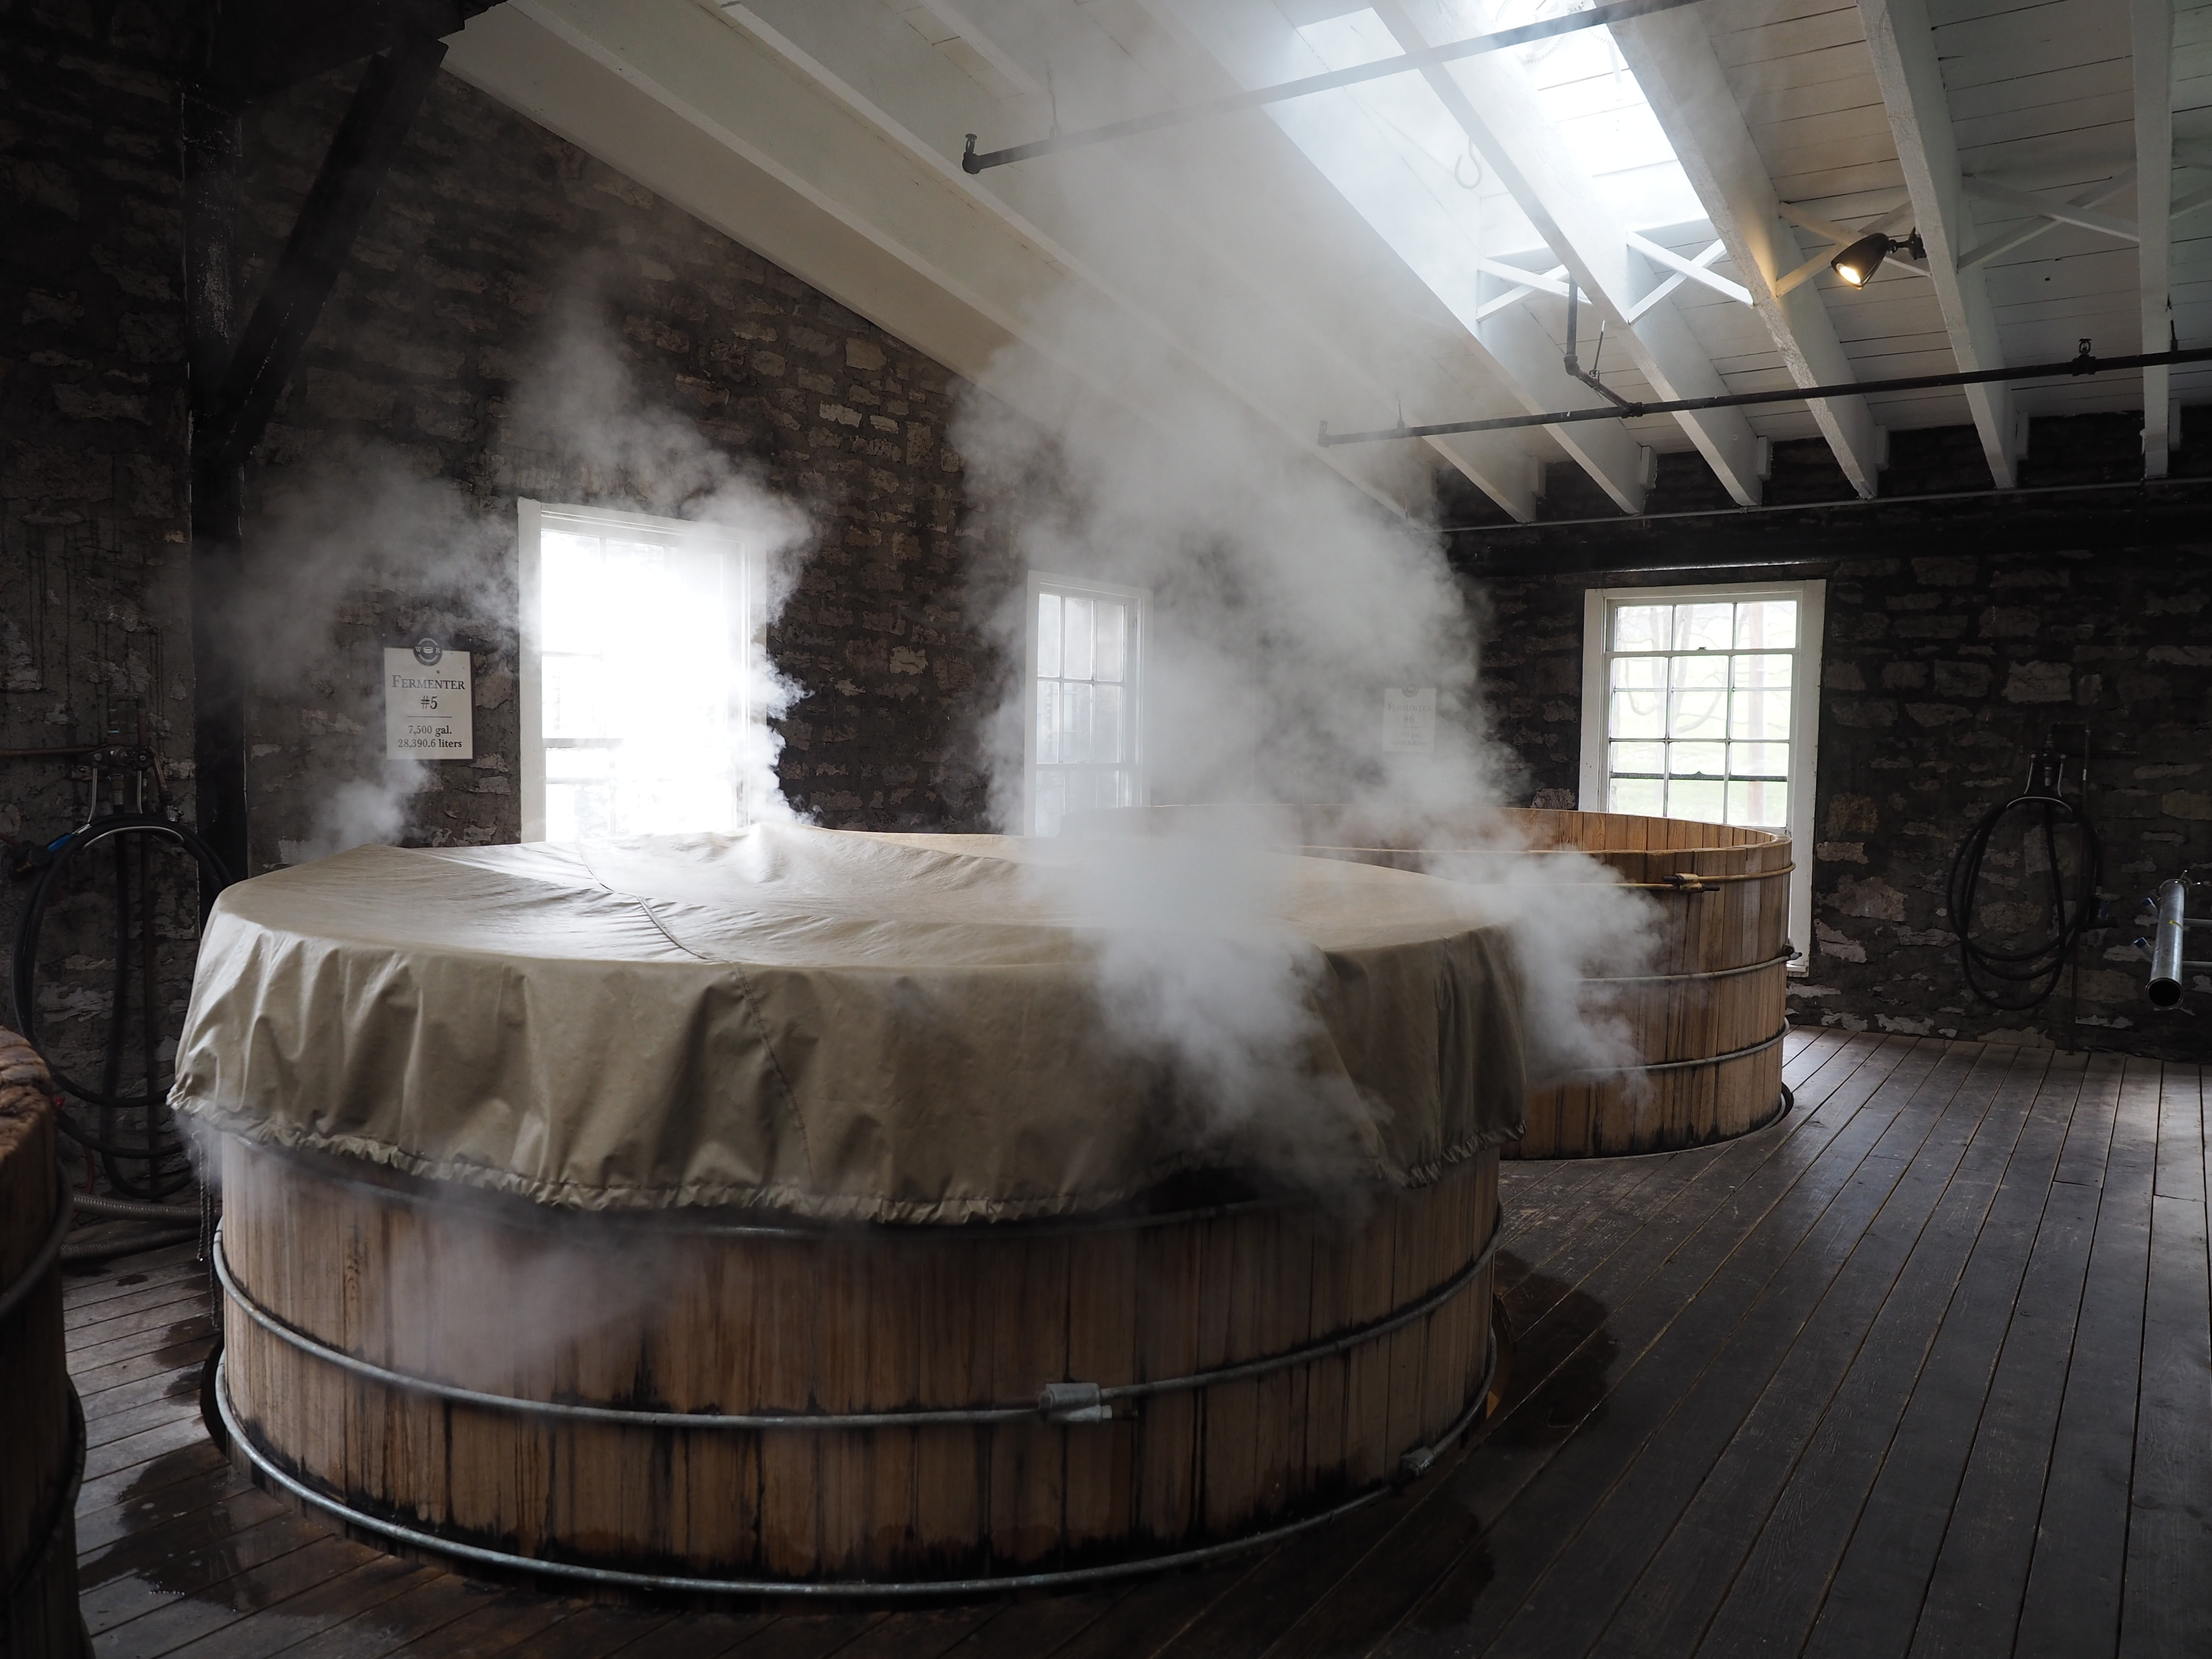 Home brewing beer at a large scale